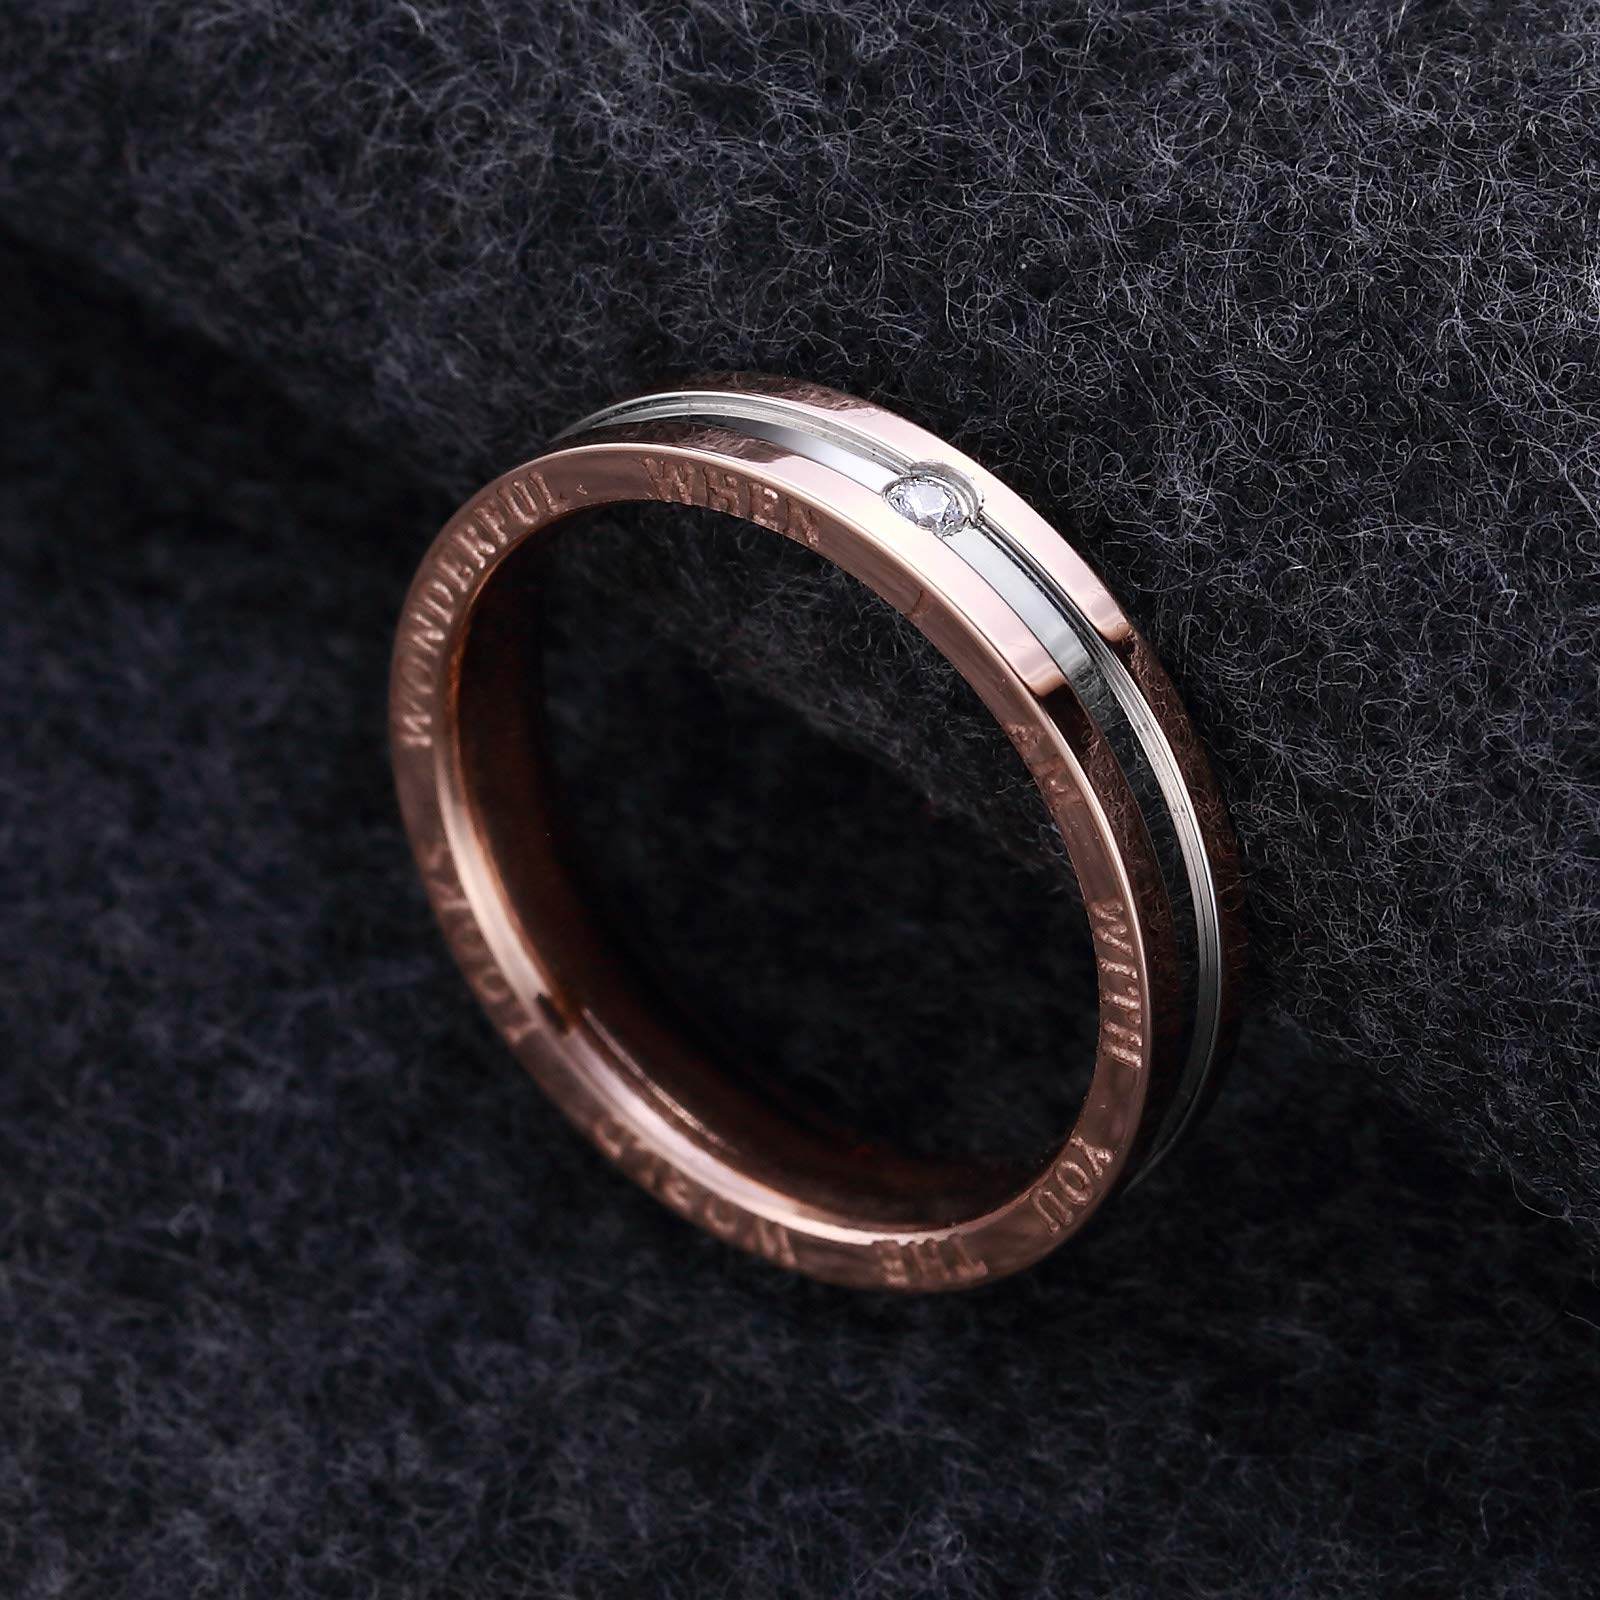 Dec.bells Silver Rose Gold Two Tone Stainless Steel Promise Ring Band Small Ring for Her (Size 5) by Dec.bells (Image #3)